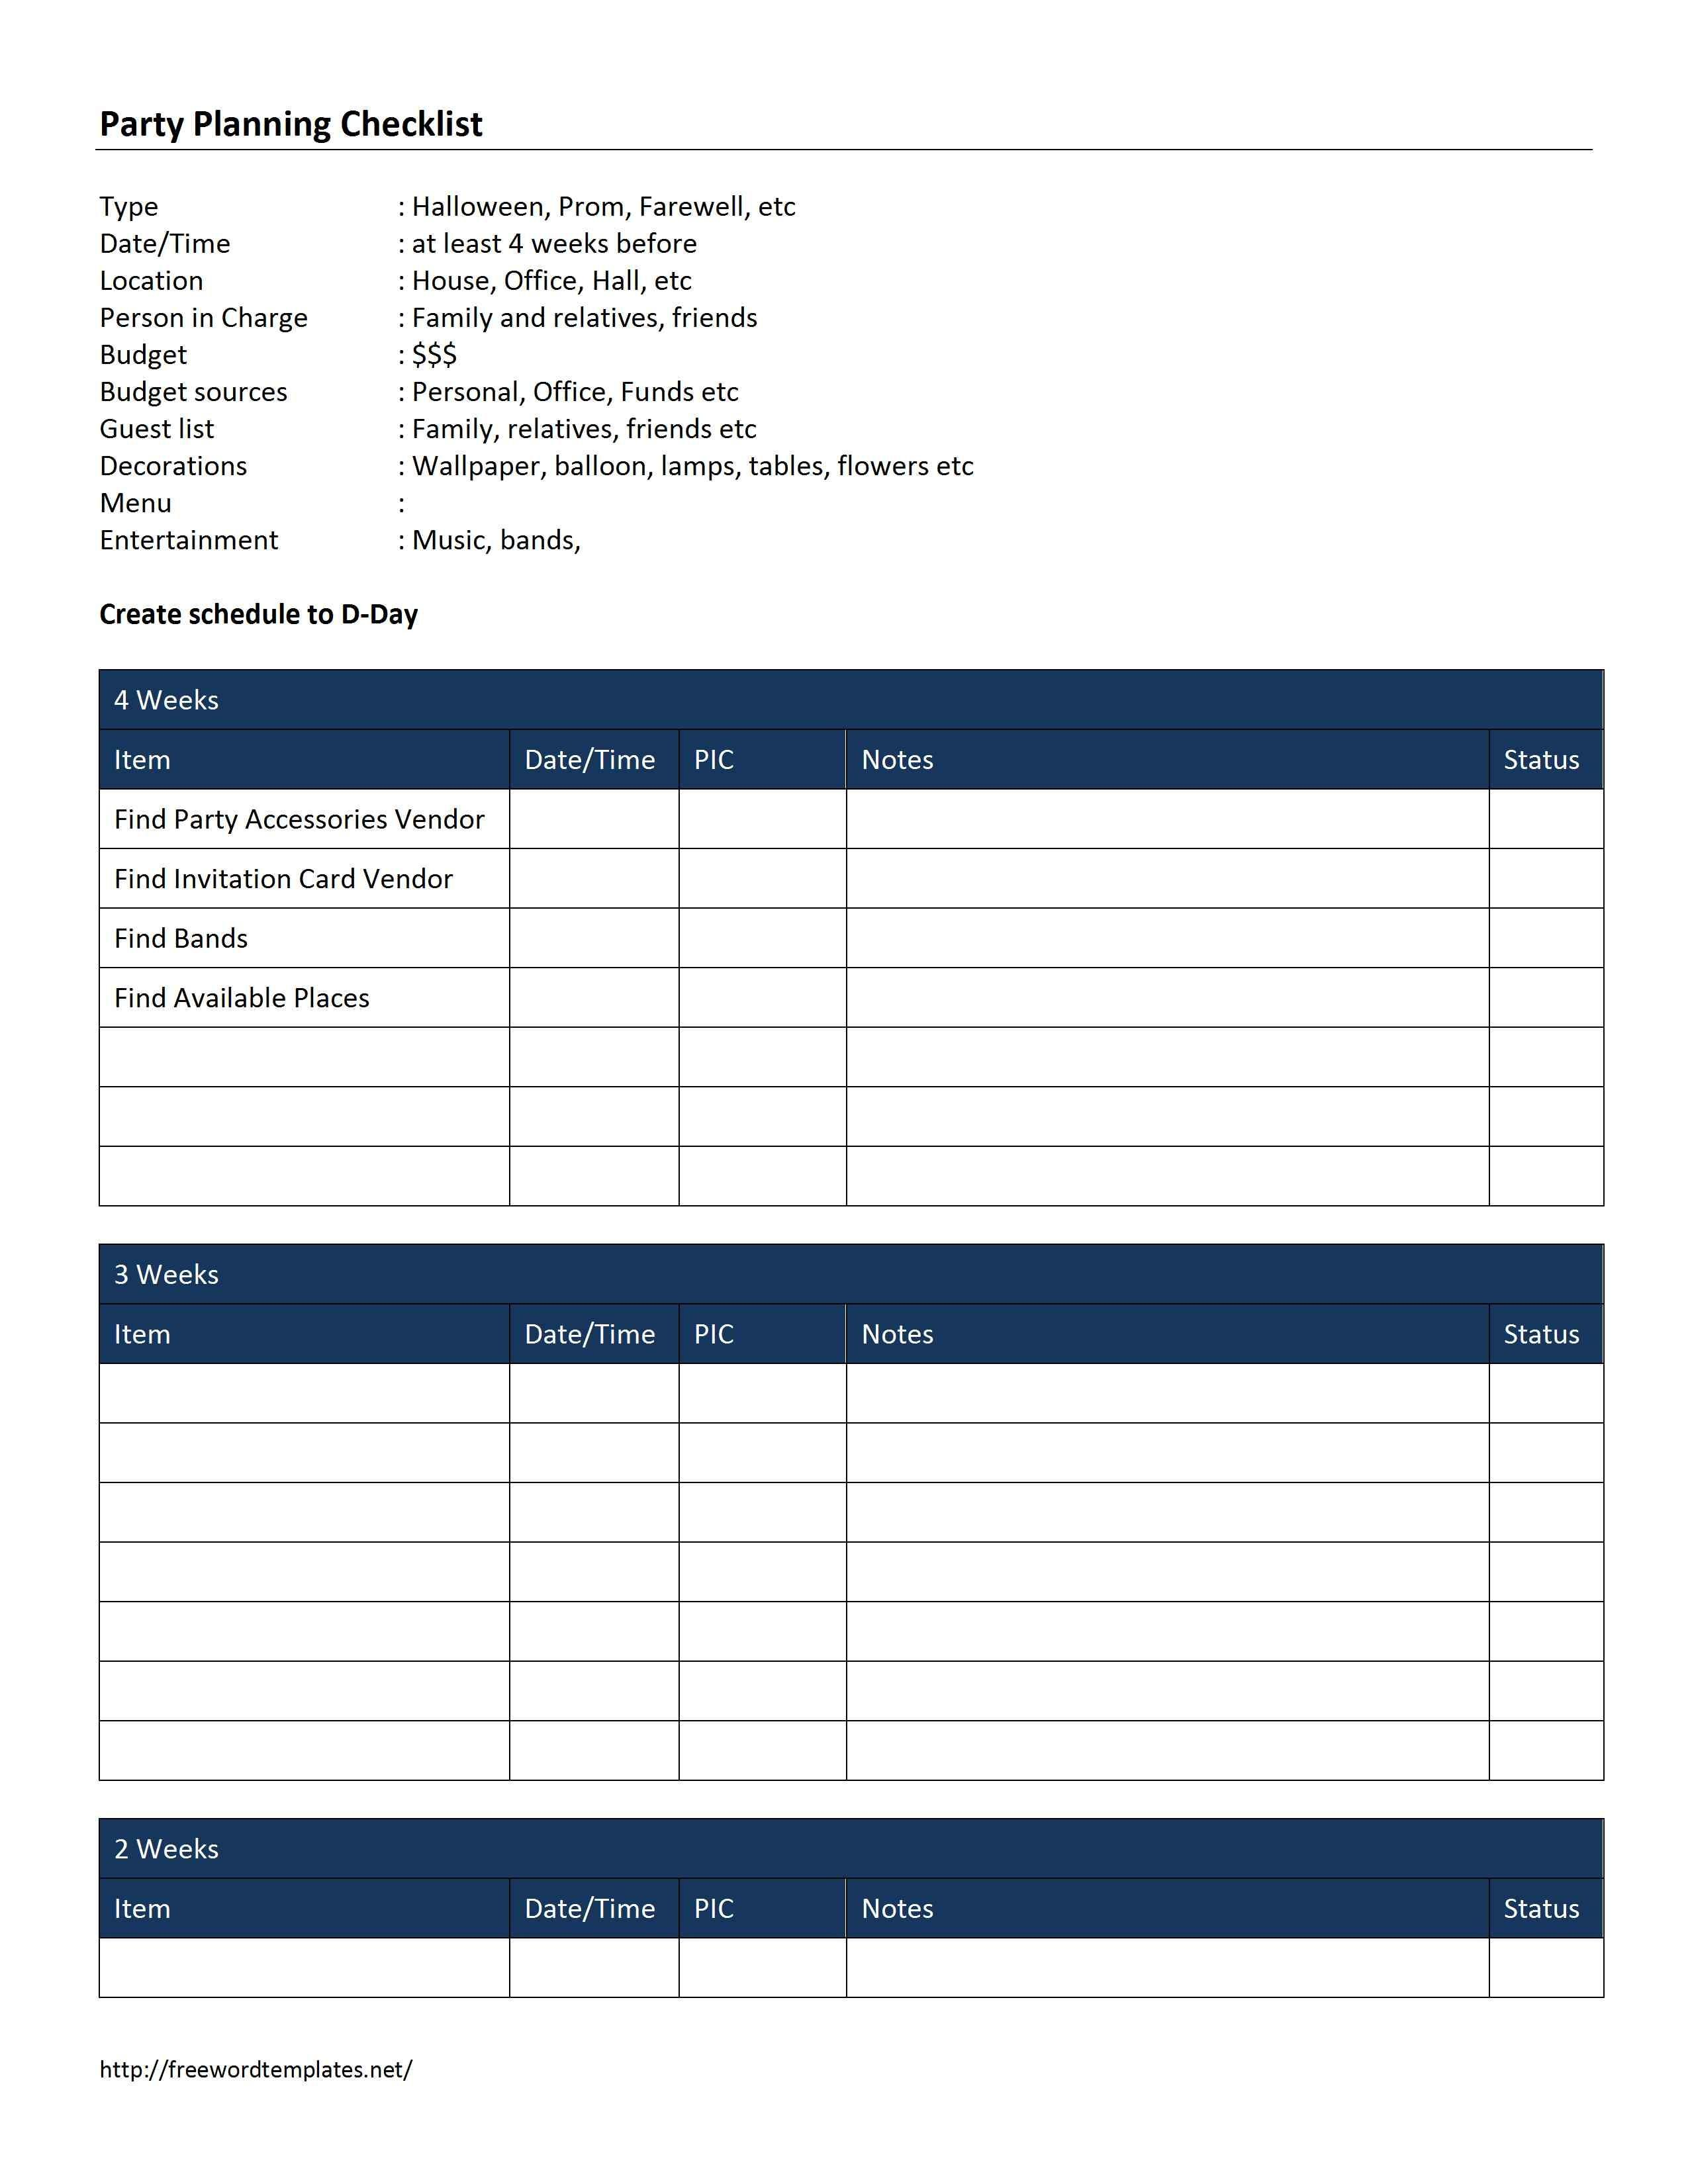 Party Planning Checklist Template Microsoft Word